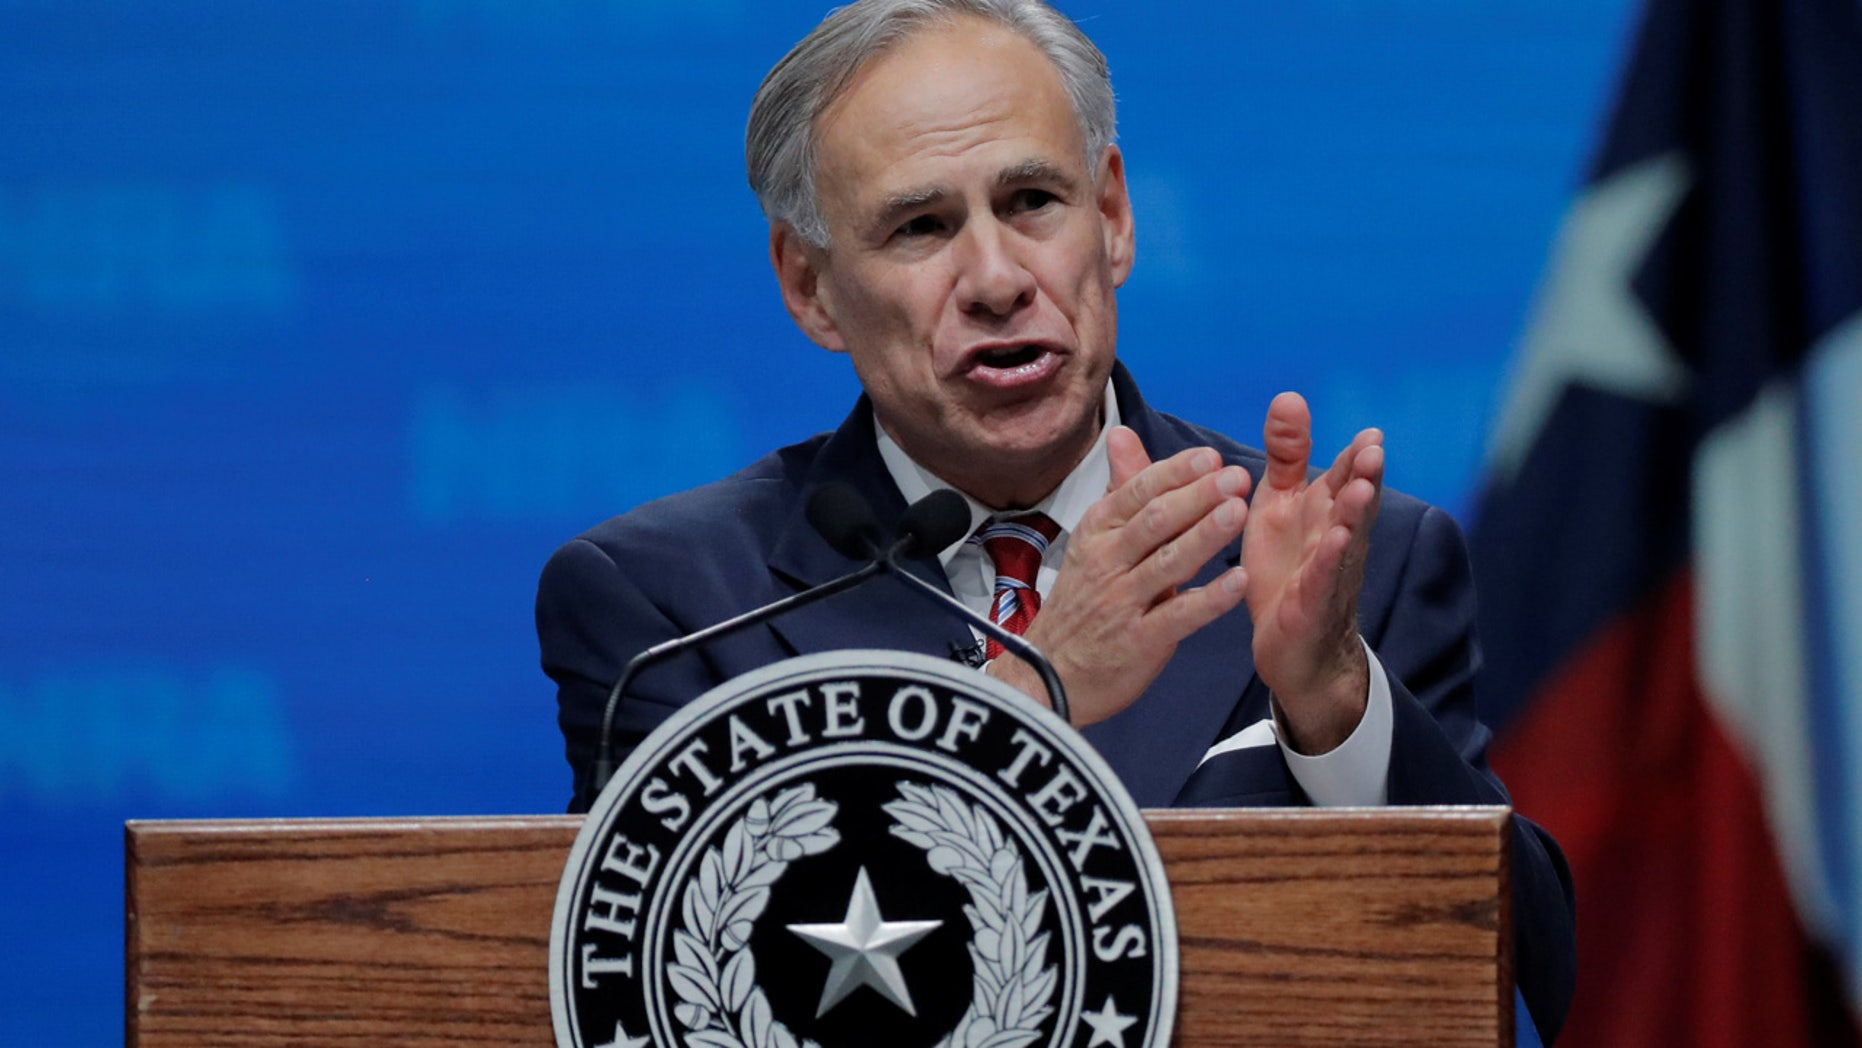 The reelection campaign for Gov. Greg Abbott canceled a contest that would award a free shotgun to one of his supporters